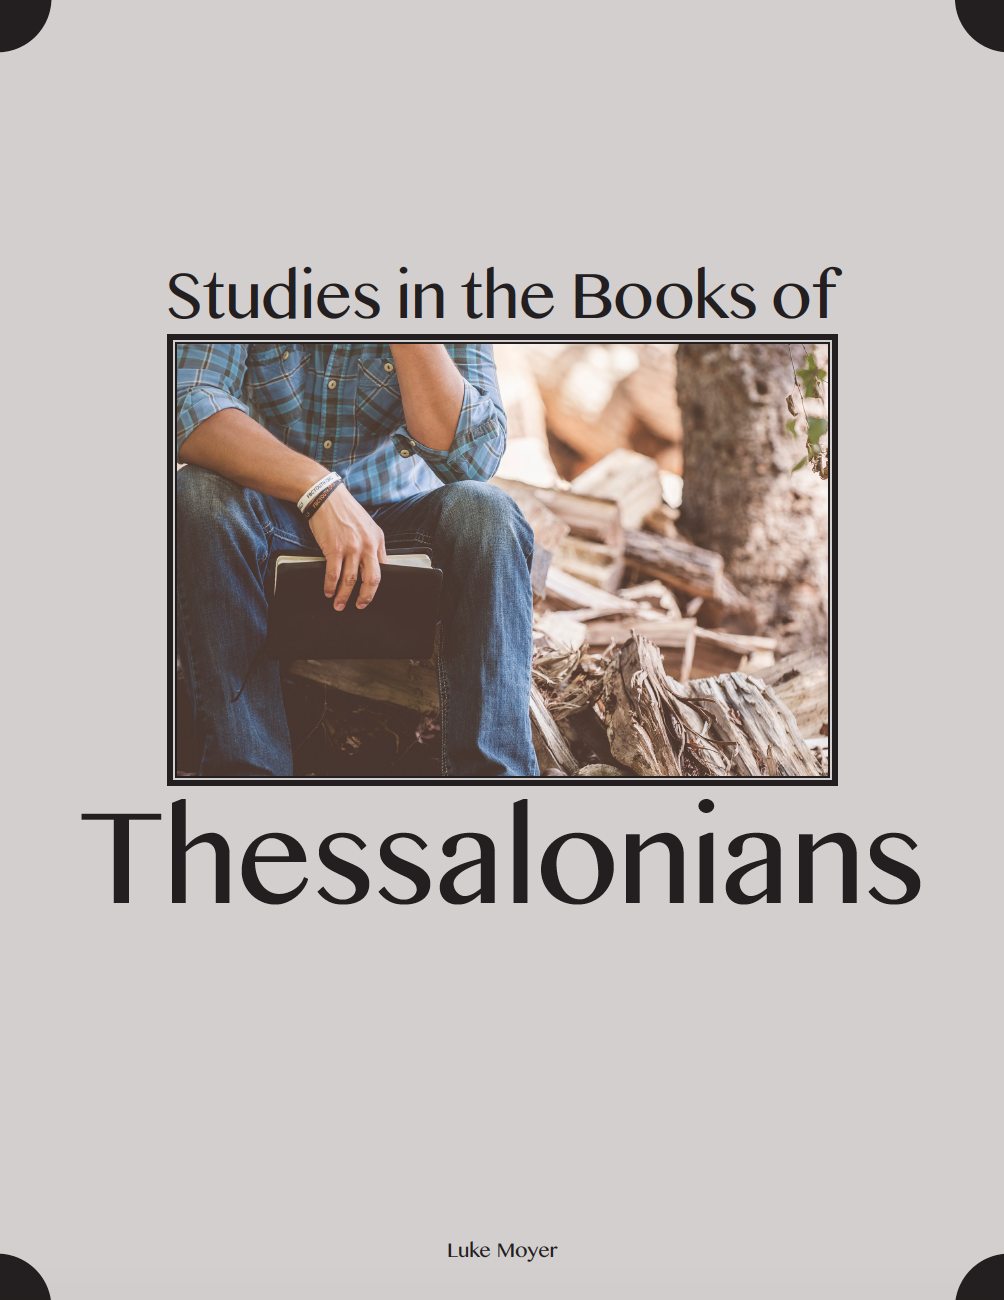 Studies in the Books of Thessalonians